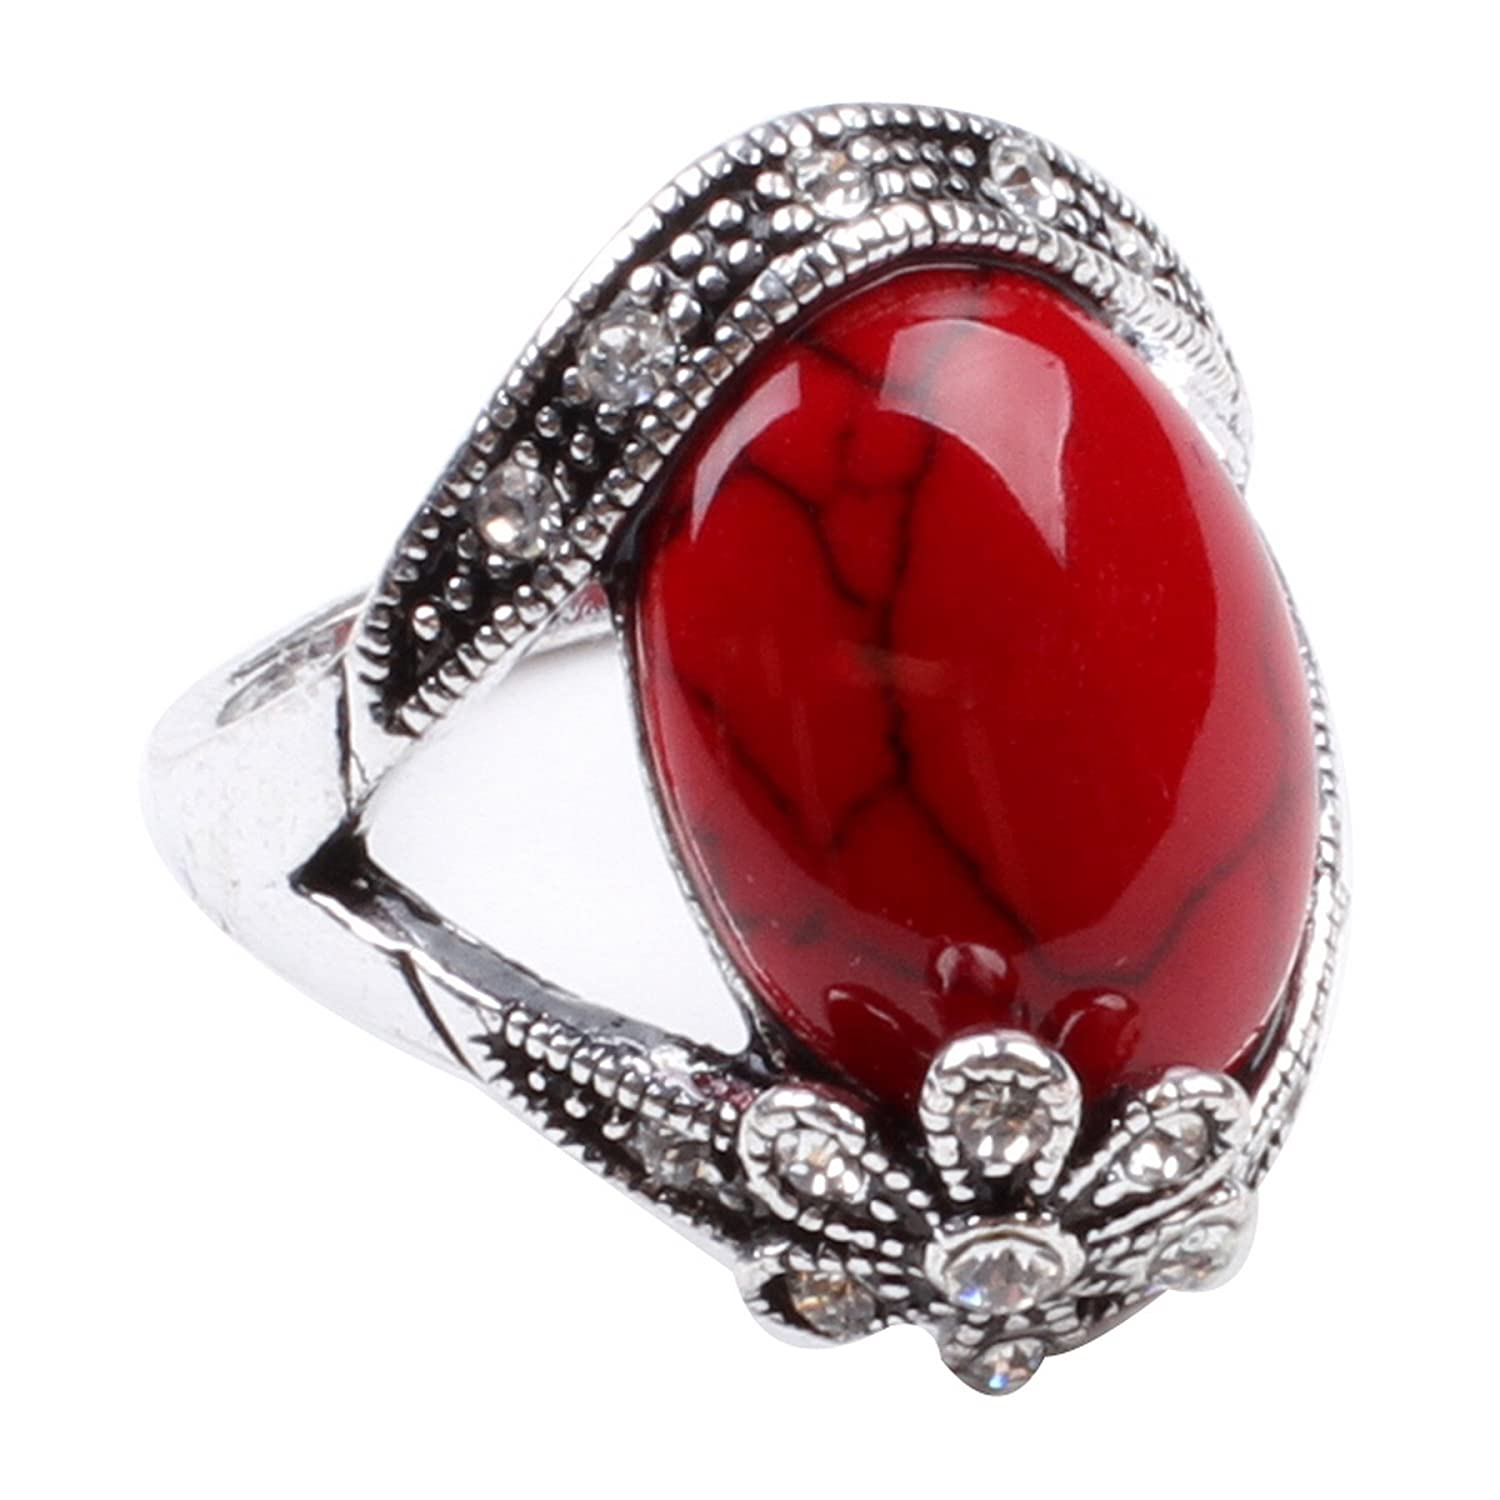 xiagao stones punk rings crystal men ring mens stainless cool man real casting gothic for big s red product steel finger